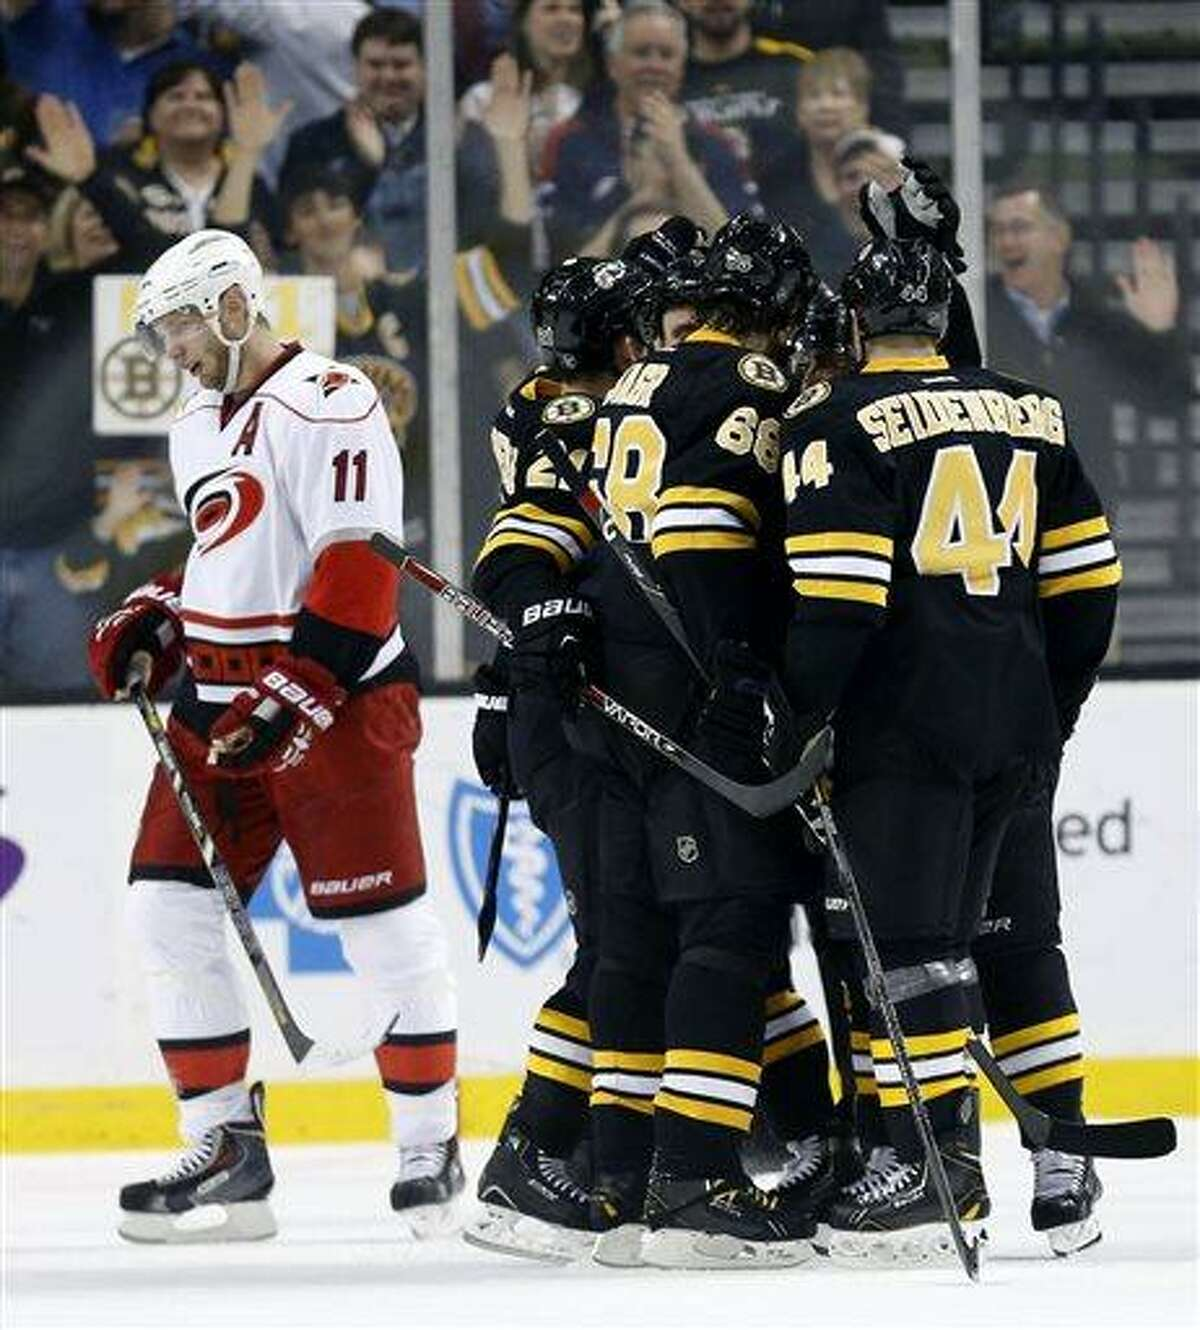 Boston Bruins' Dennis Seidenberg (44) and Jaromir Jagr (68) celebrate with teammates after Bruins' Brad Marchand scored his second goal as Carolina Hurricanes' Jordan Staal (11) skates away in the first period of an NHL hockey game in Boston, Monday, April, 8, 2013. (AP Photo/Michael Dwyer)